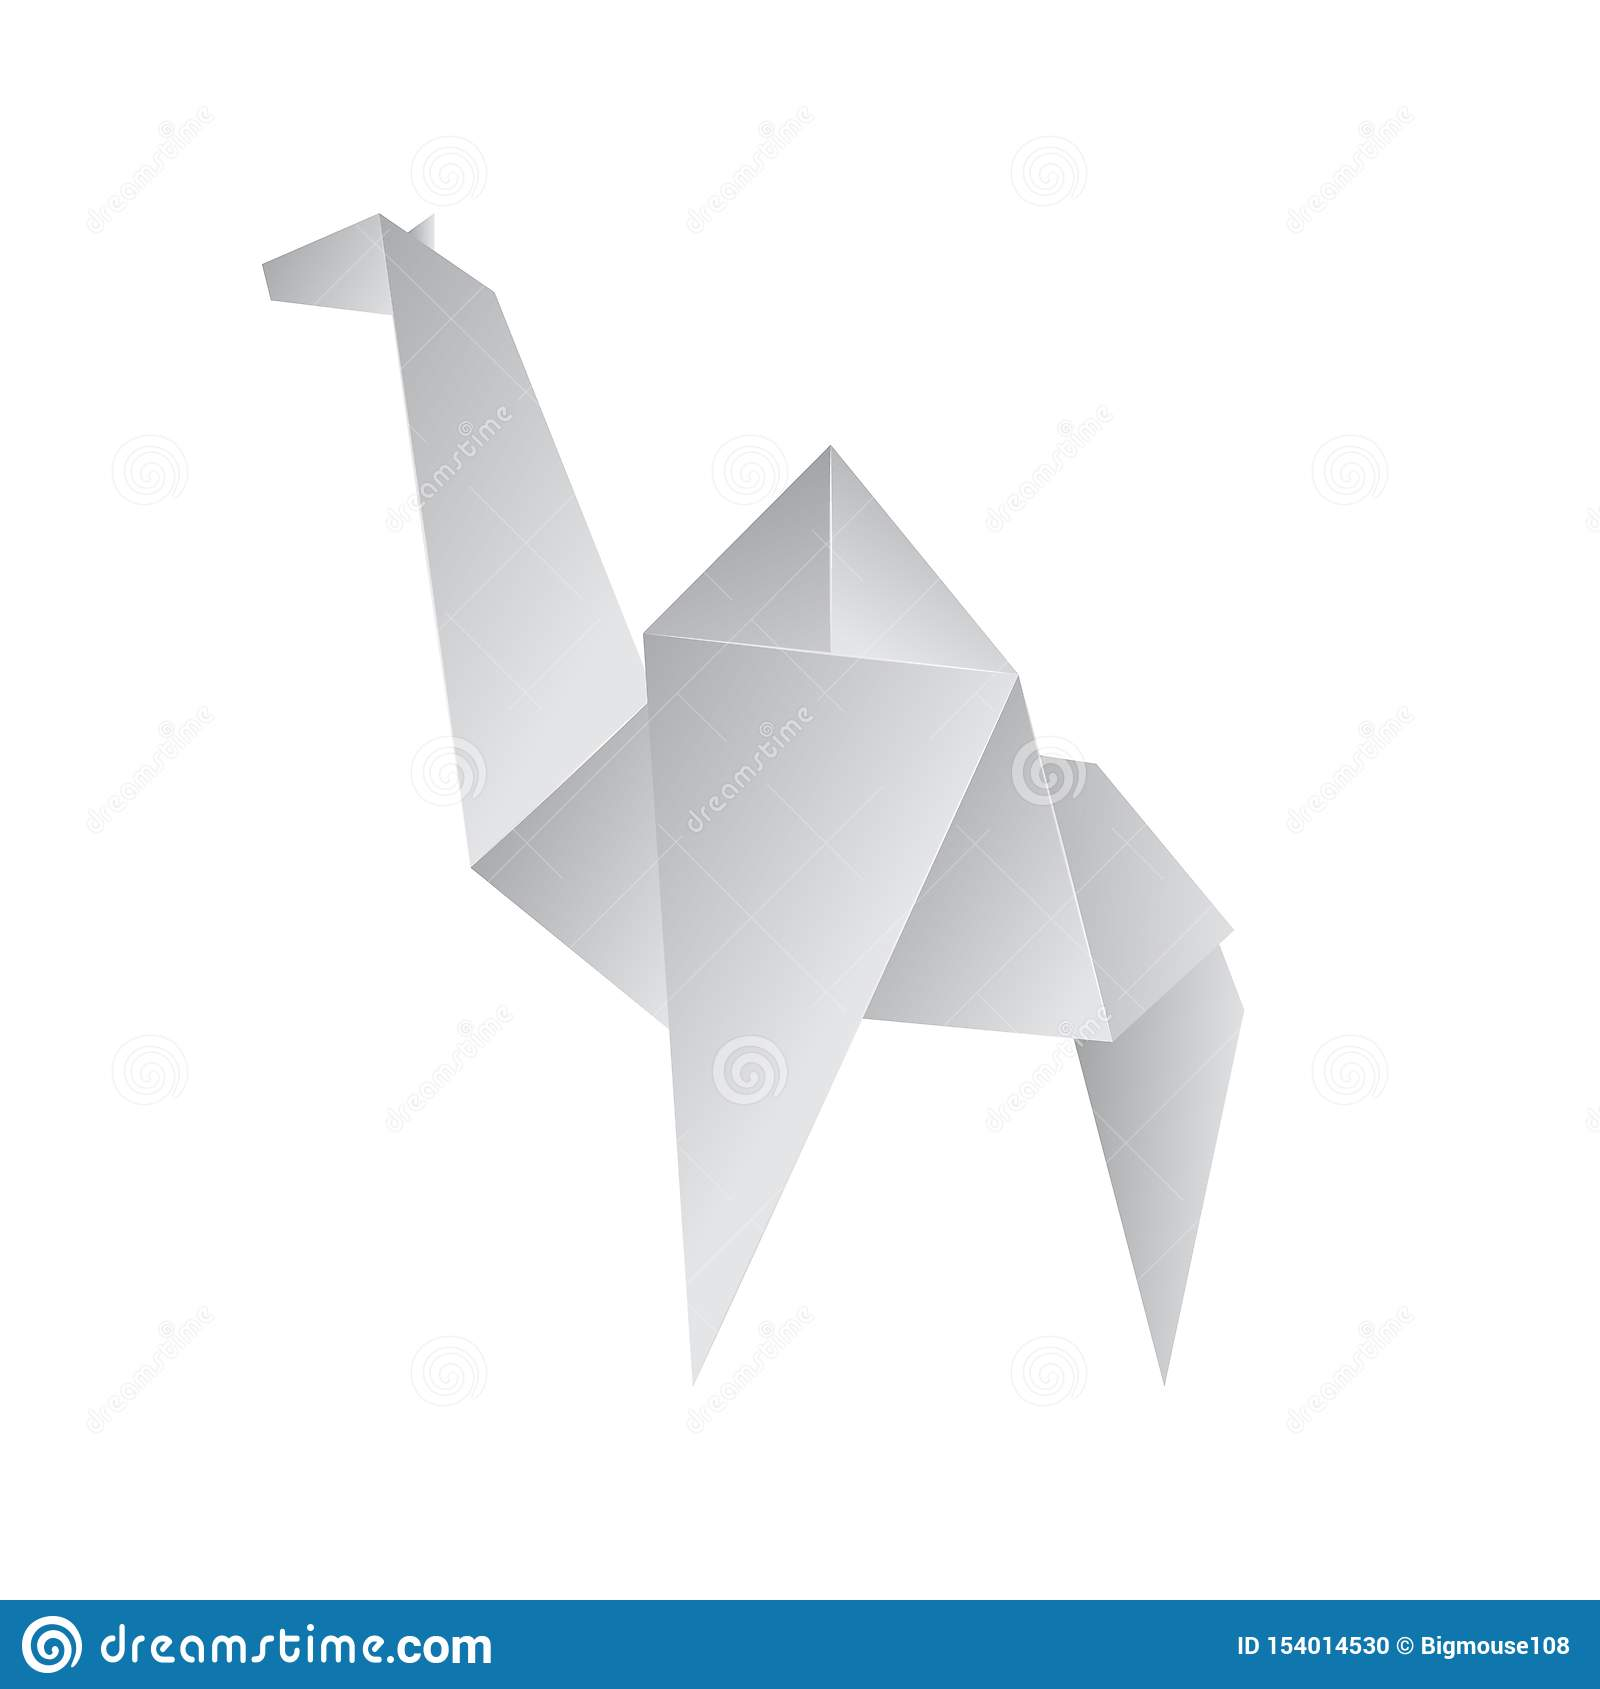 Realistic Detailed 3d Origami Paper Animal Camel. Vector